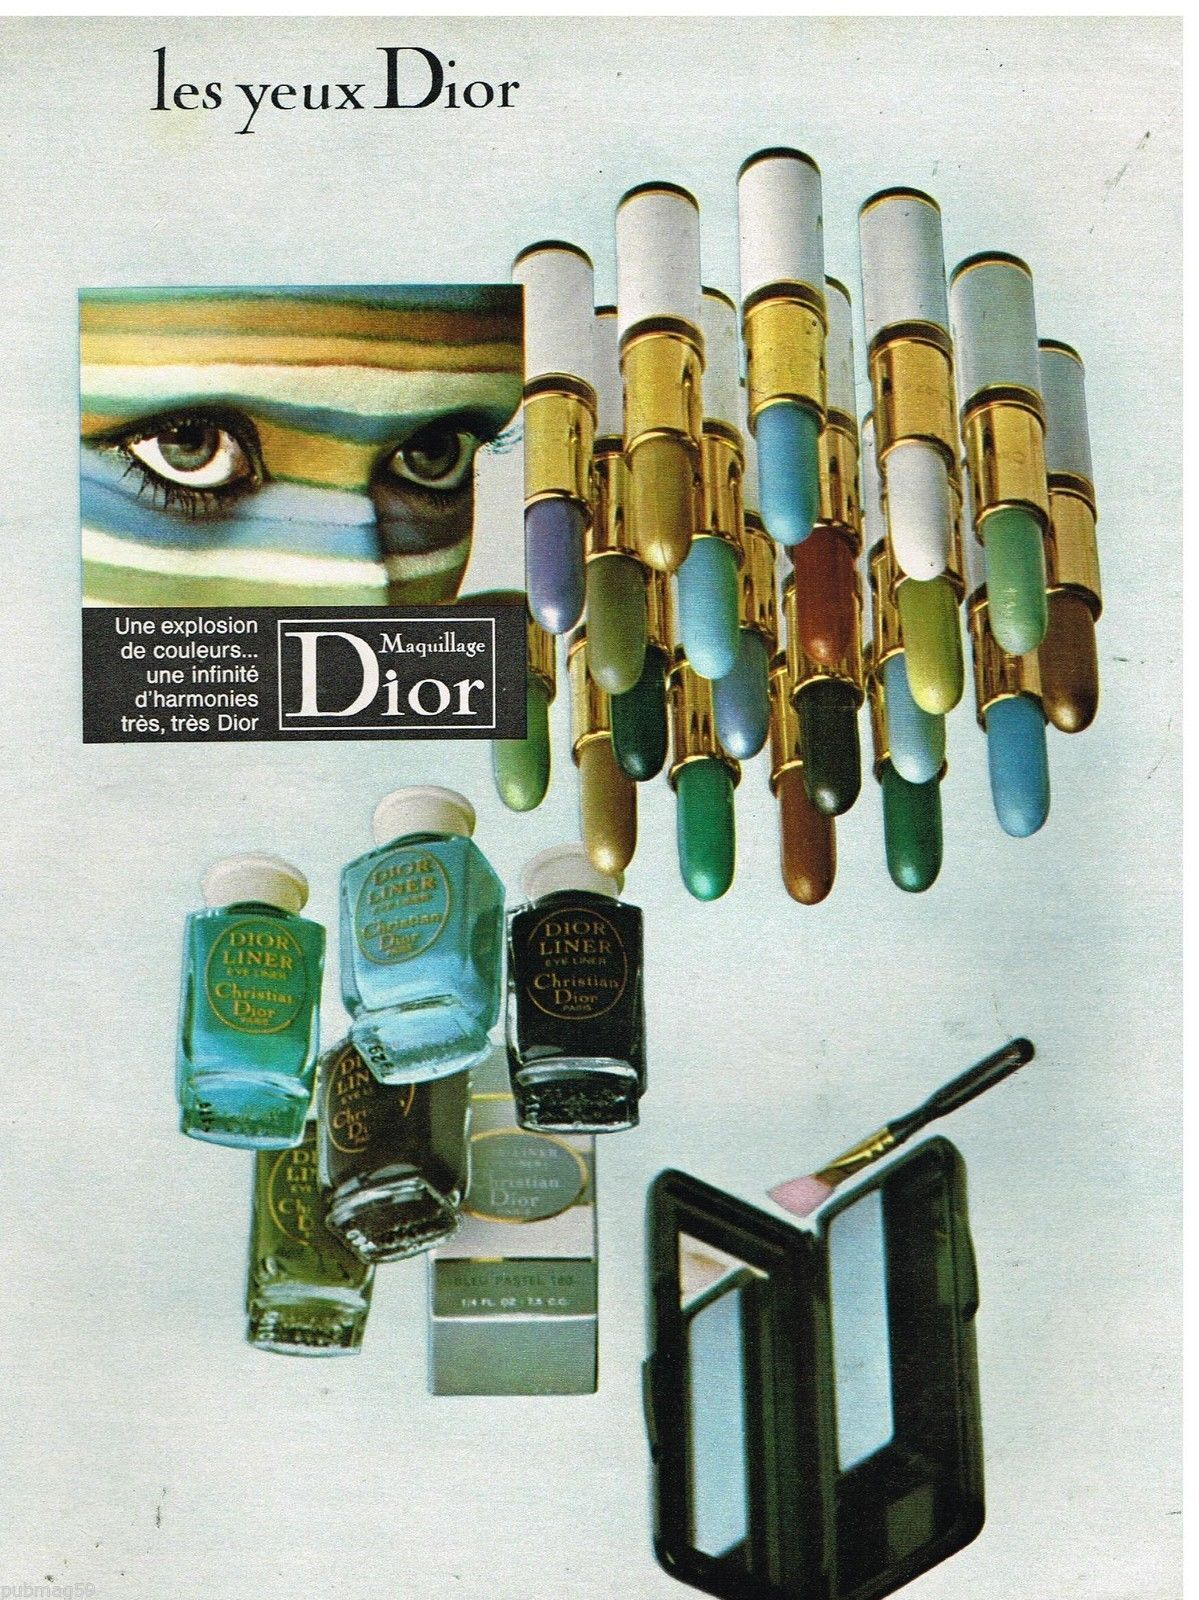 Christian dior maquillage 1970